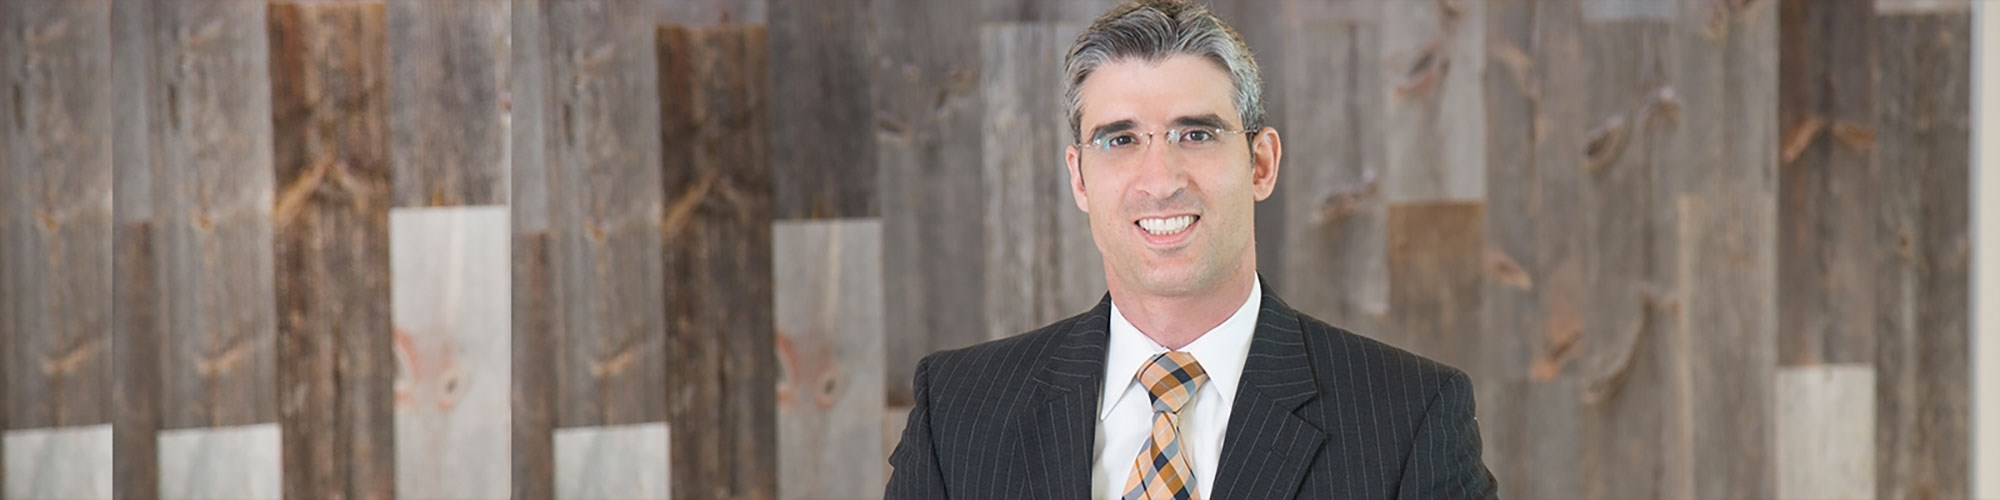 jason ohana commercial litigation lawyer willcox savage